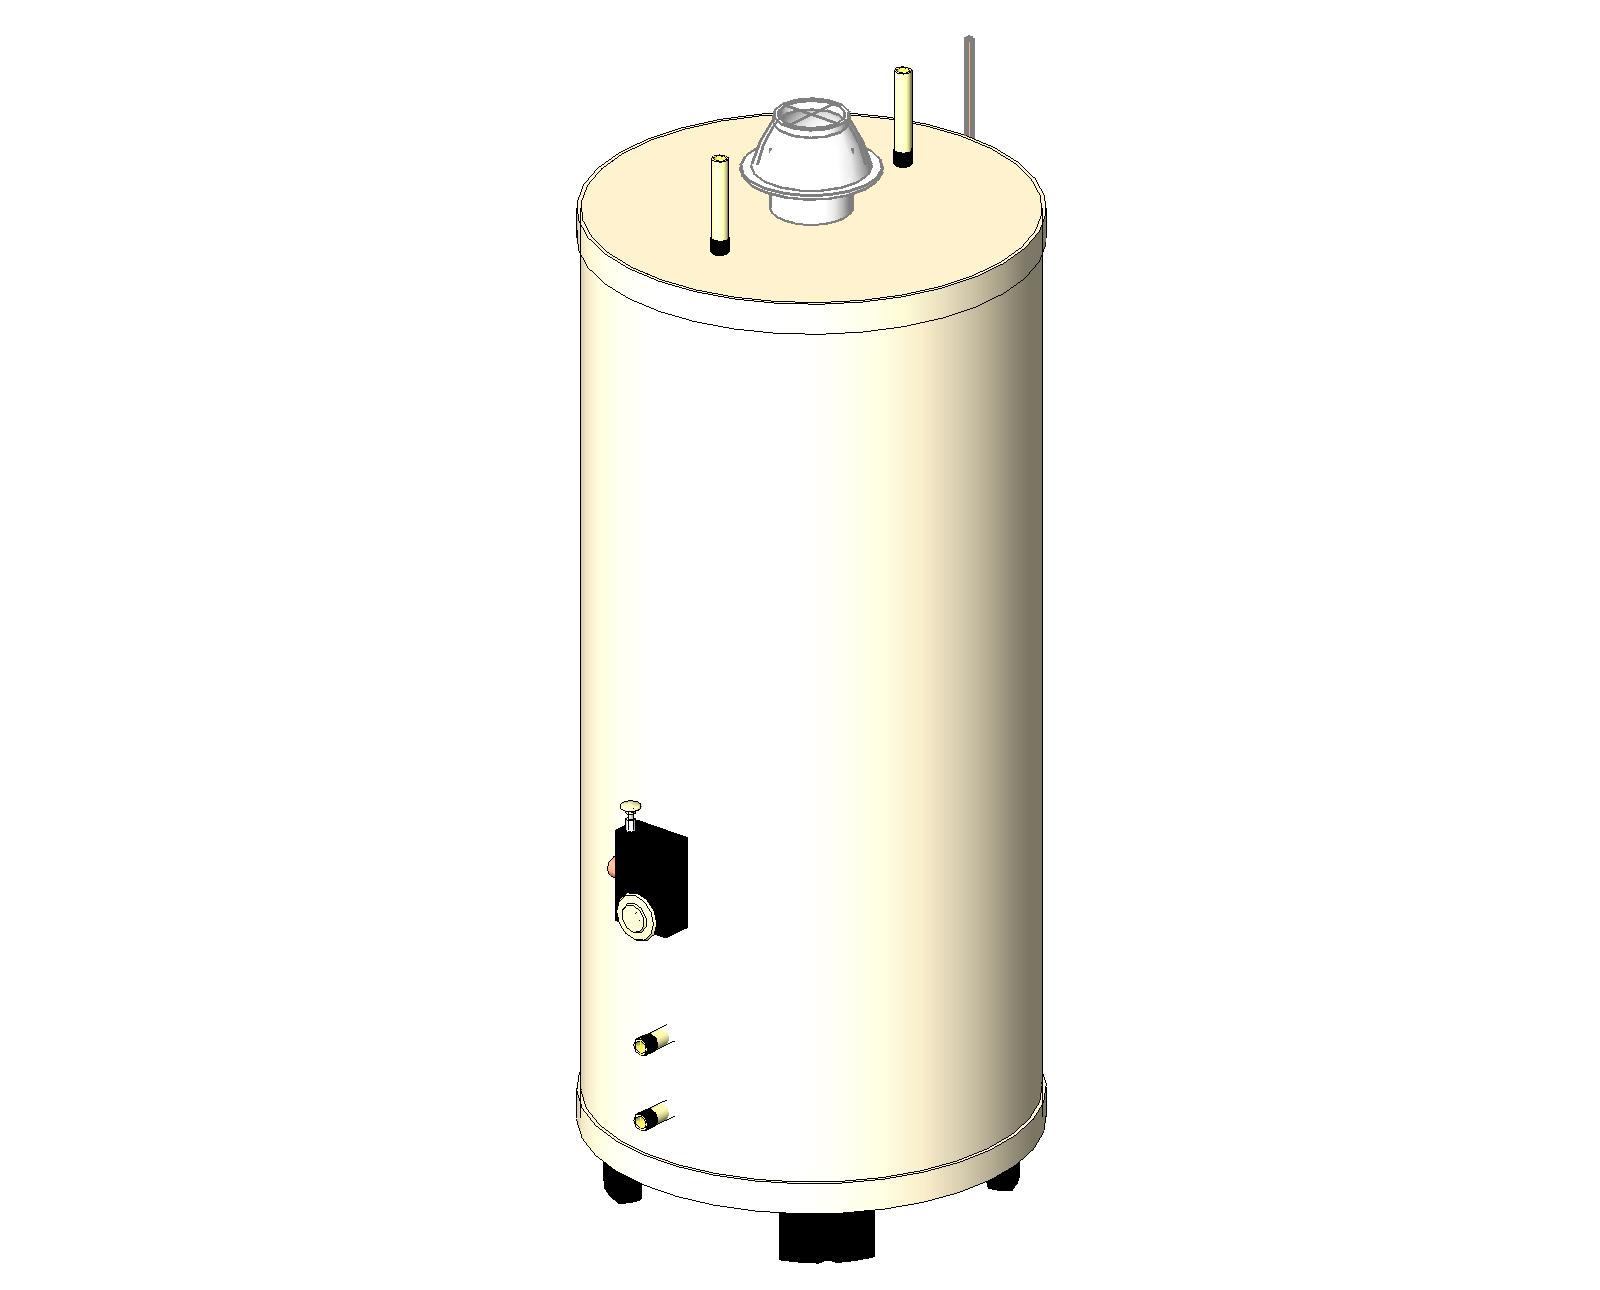 water heater extremely hot